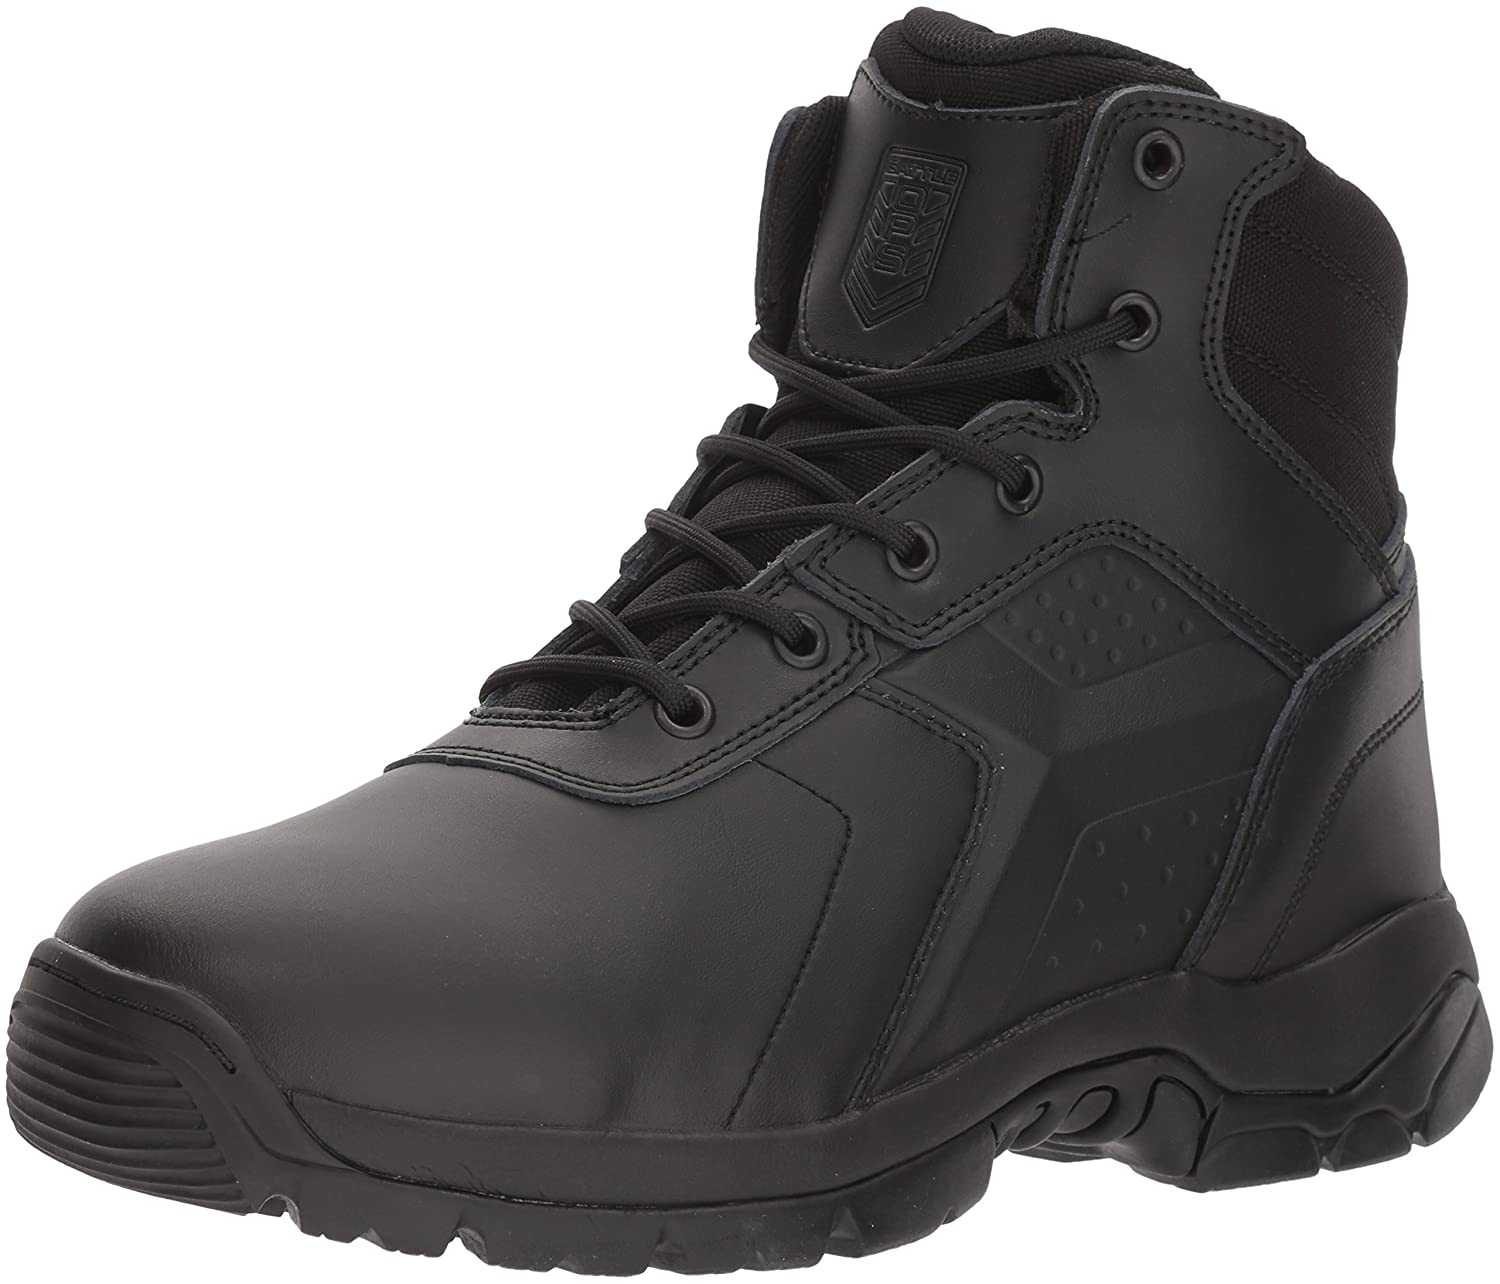 Battle Ops Men's 6 Inch Waterproof Tactical Boot Soft Toe Bops6001 Military